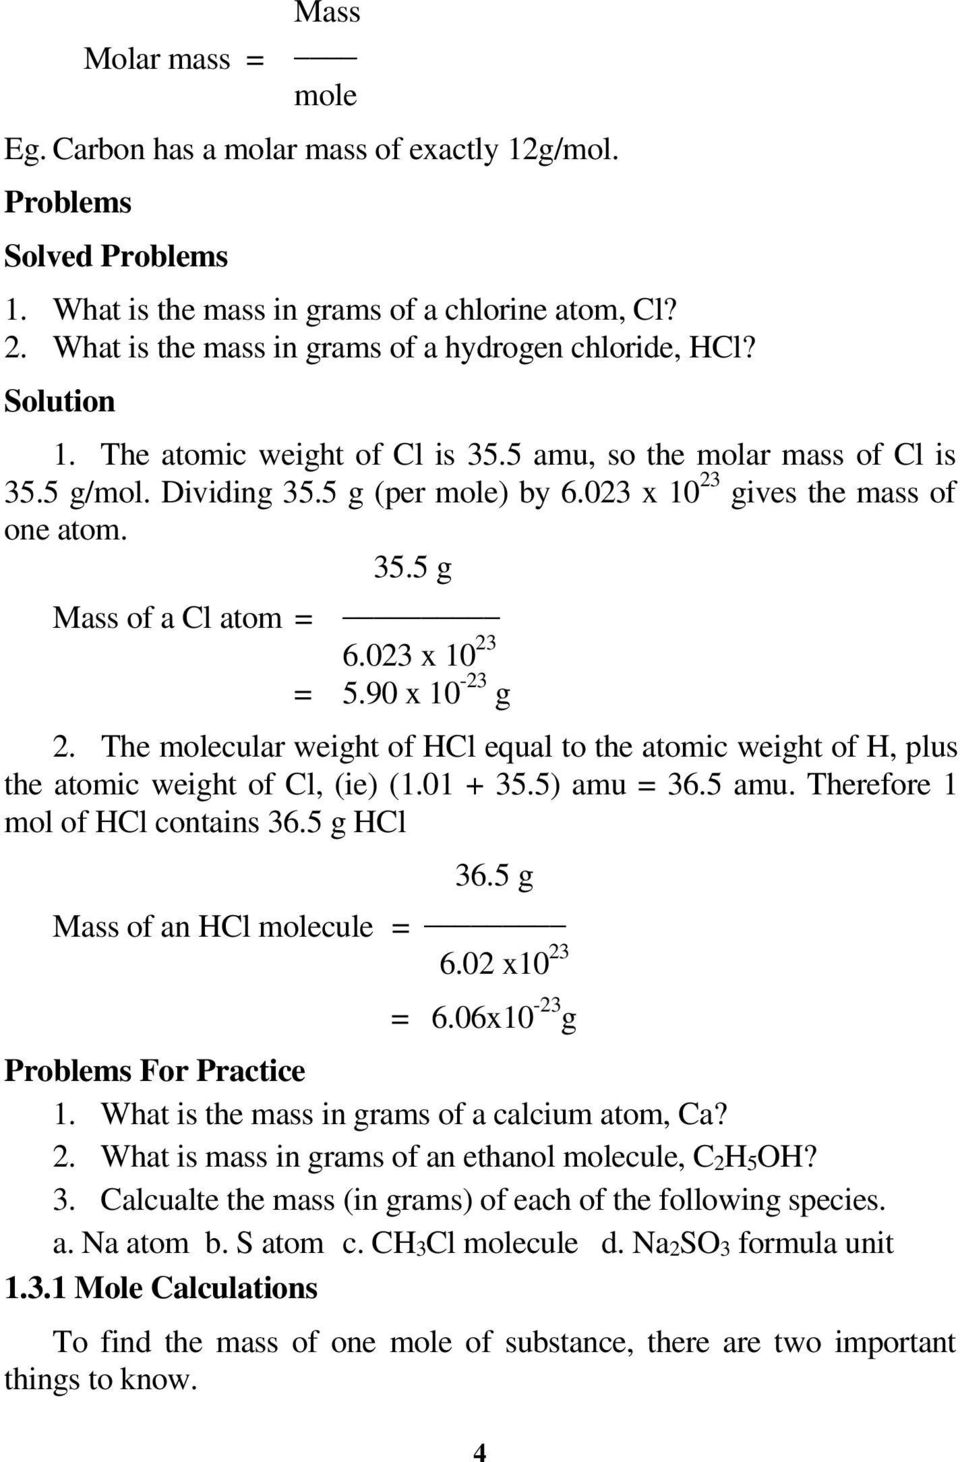 023 X 10 23 Gives The Mass Of One Atom 355 G Mass Of A Chemistry